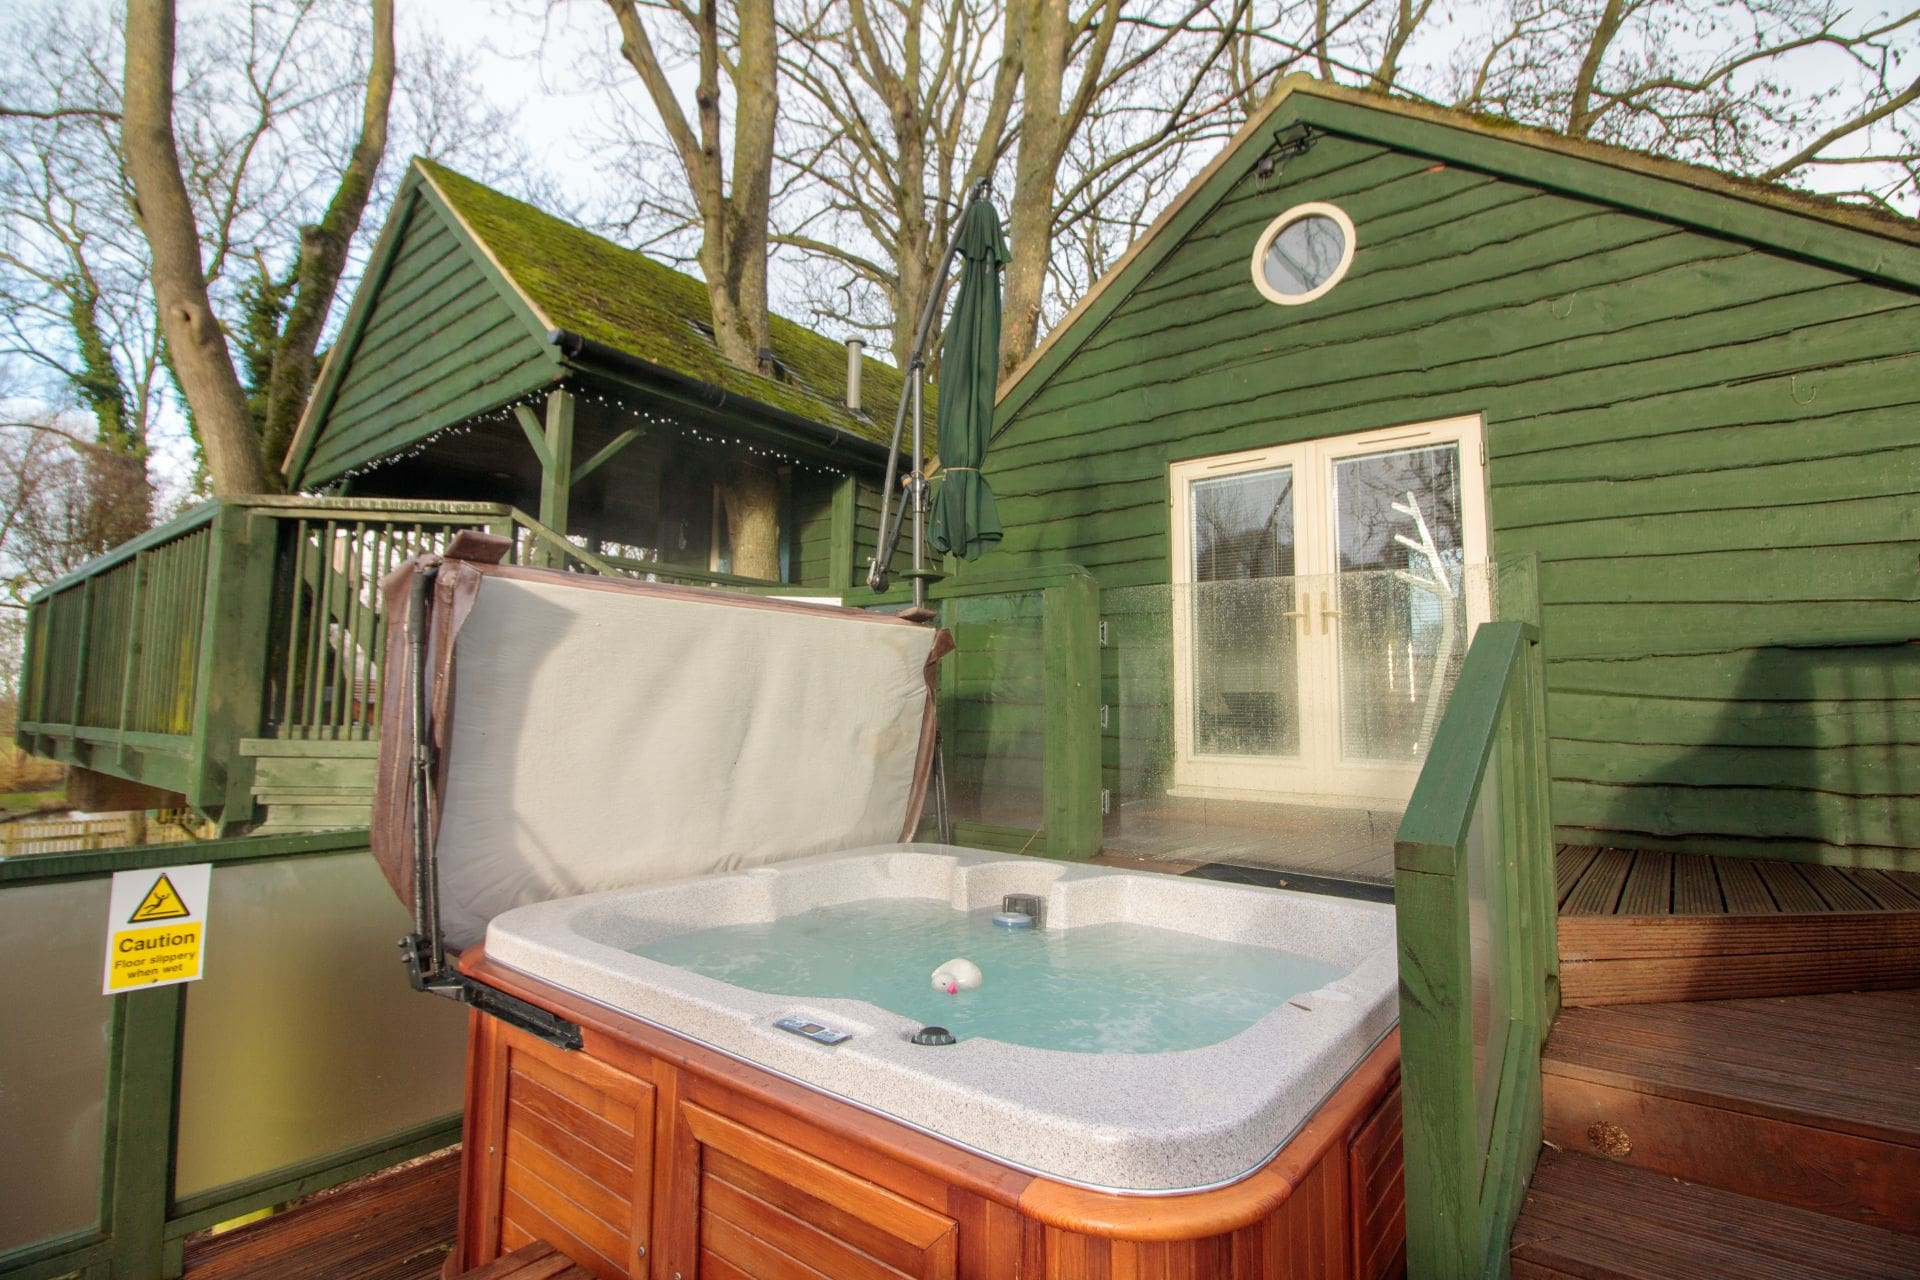 bubbling-outdoor-hot-tub-jacuzzi-on-decking-in-holiday-accommodation-wills-tree-house-treehouse-breaks-uk